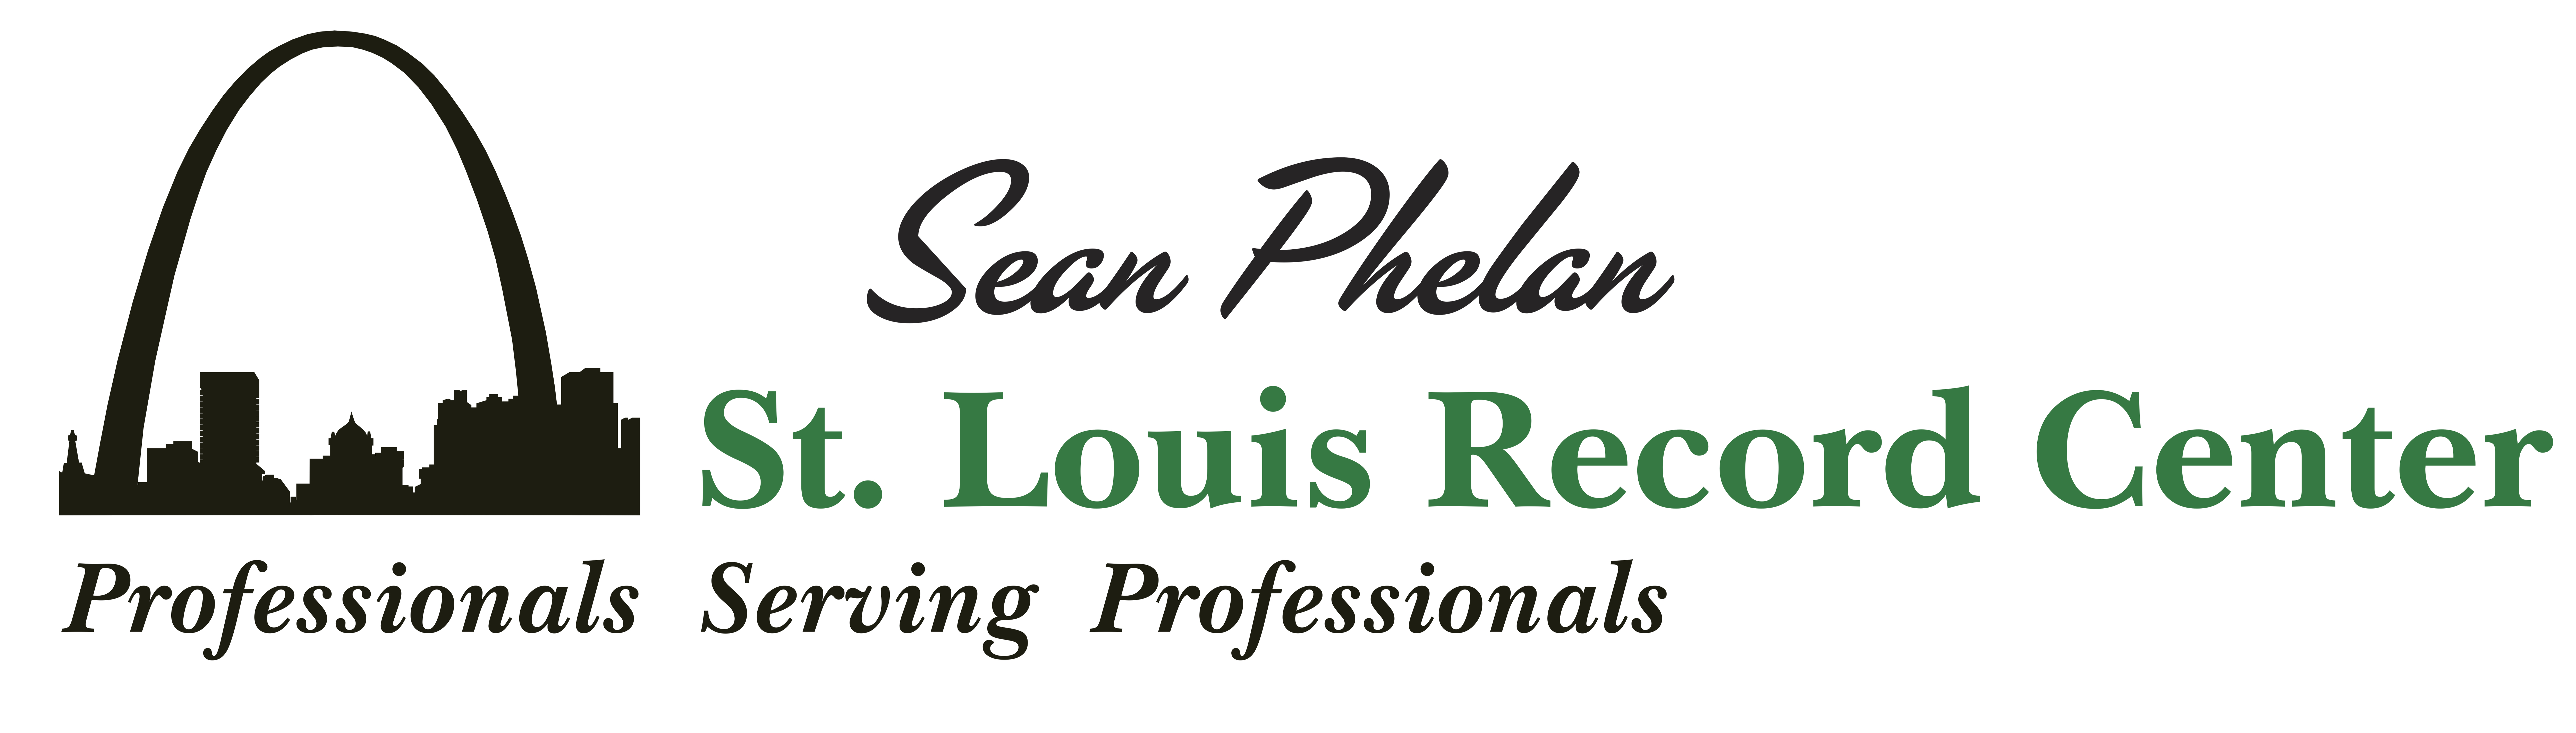 Hole Sponsor - ST. Louis Record Center - Logo